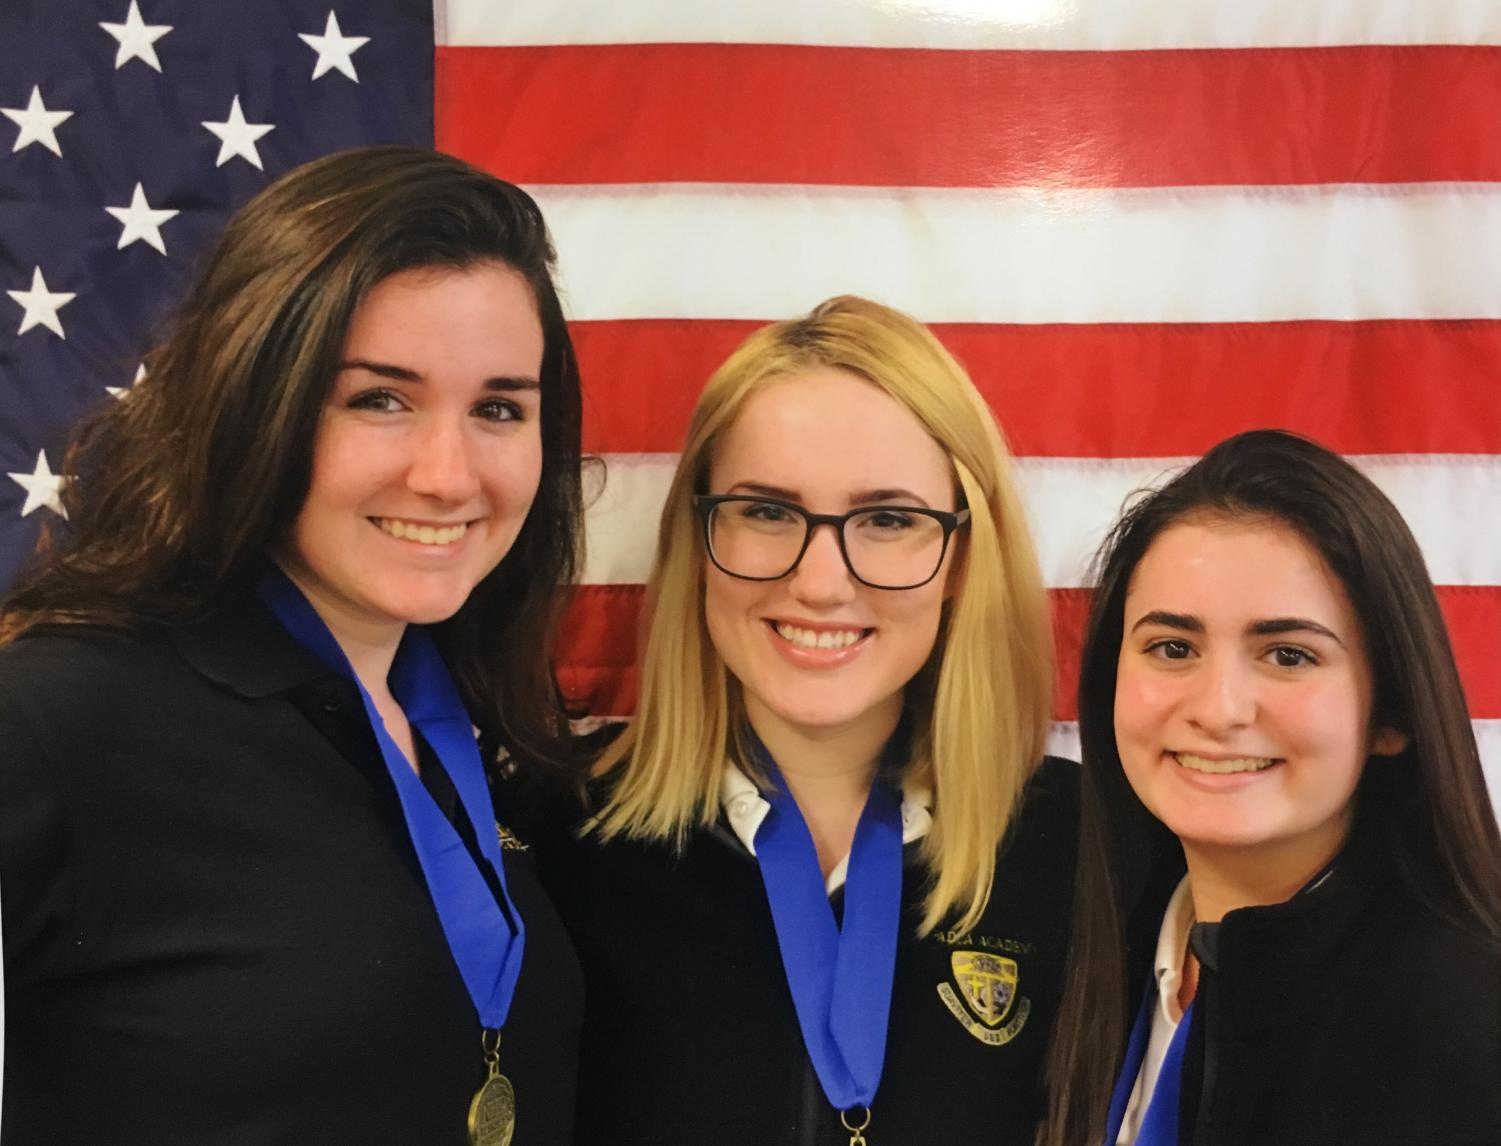 Natalie Onesi, Chrissy Molloy, and Sara Mayberry pose for a photo after they receive their first place medals.